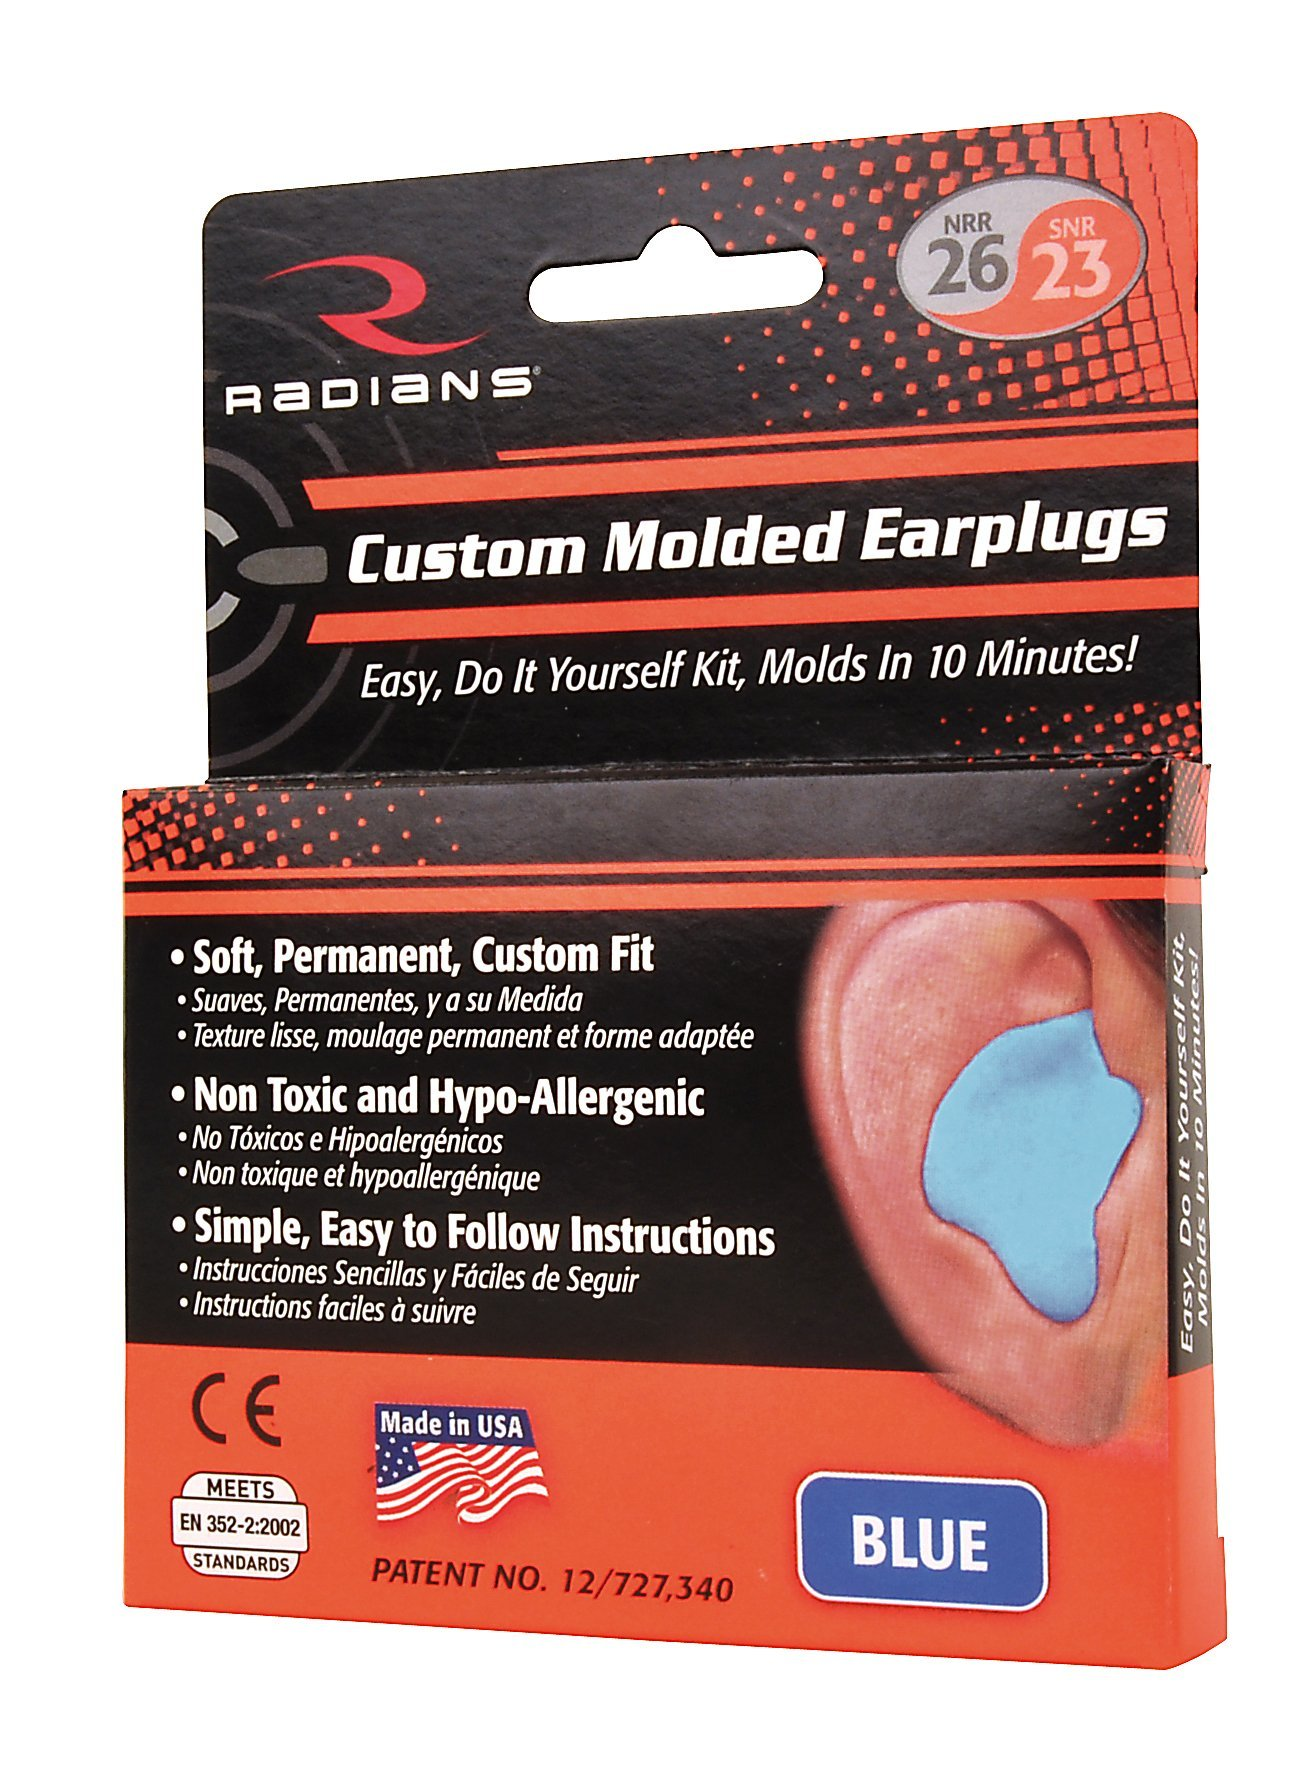 Custom Molded Earplugs, DO-IT-YOURSELF KIT